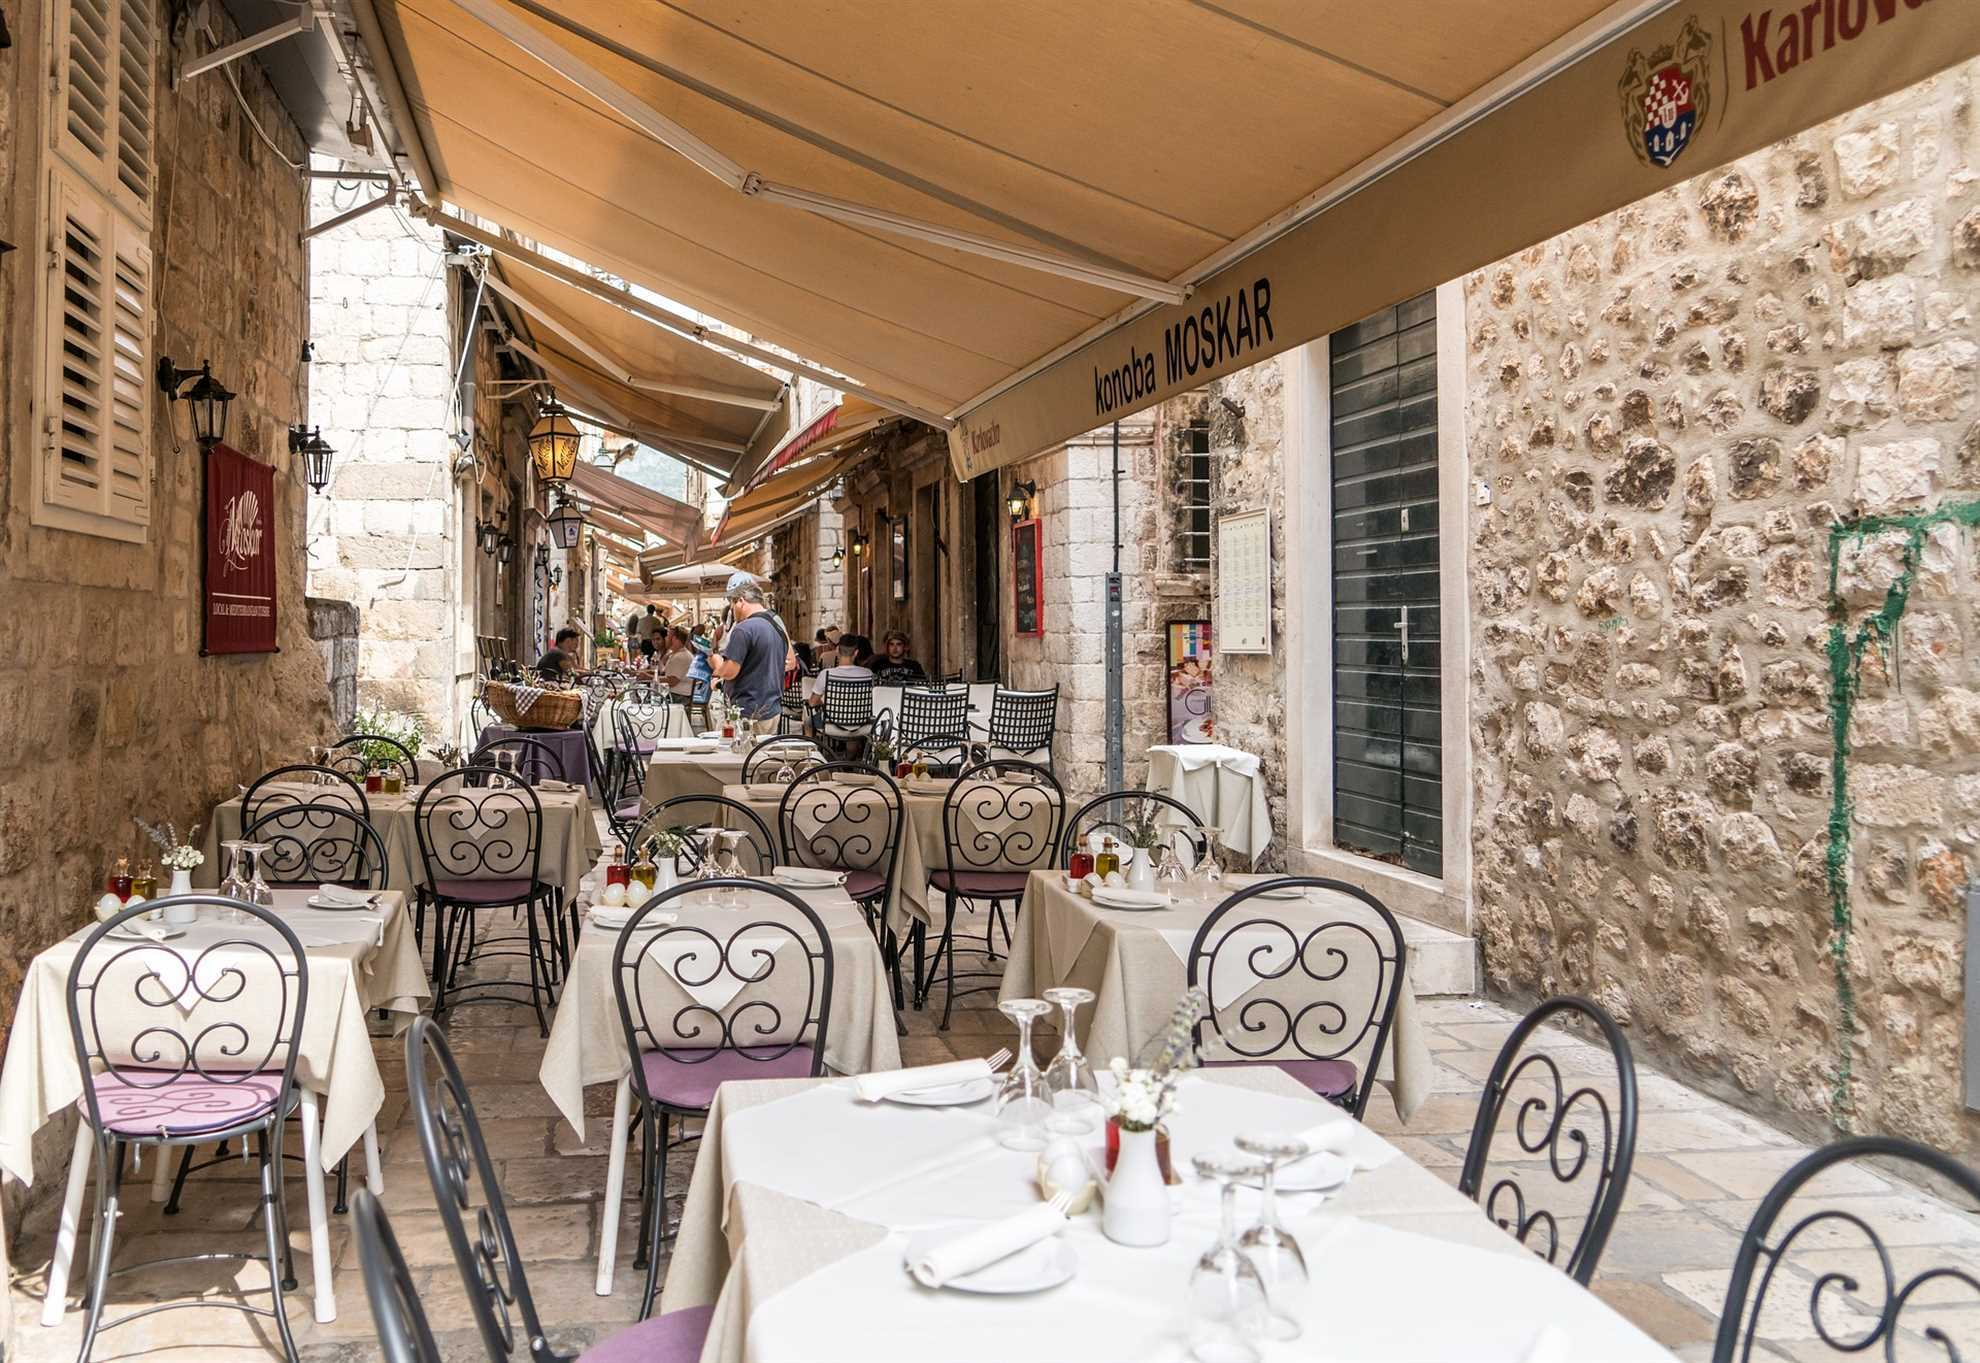 Restaurant in the alley in the old town of Dubrovnik